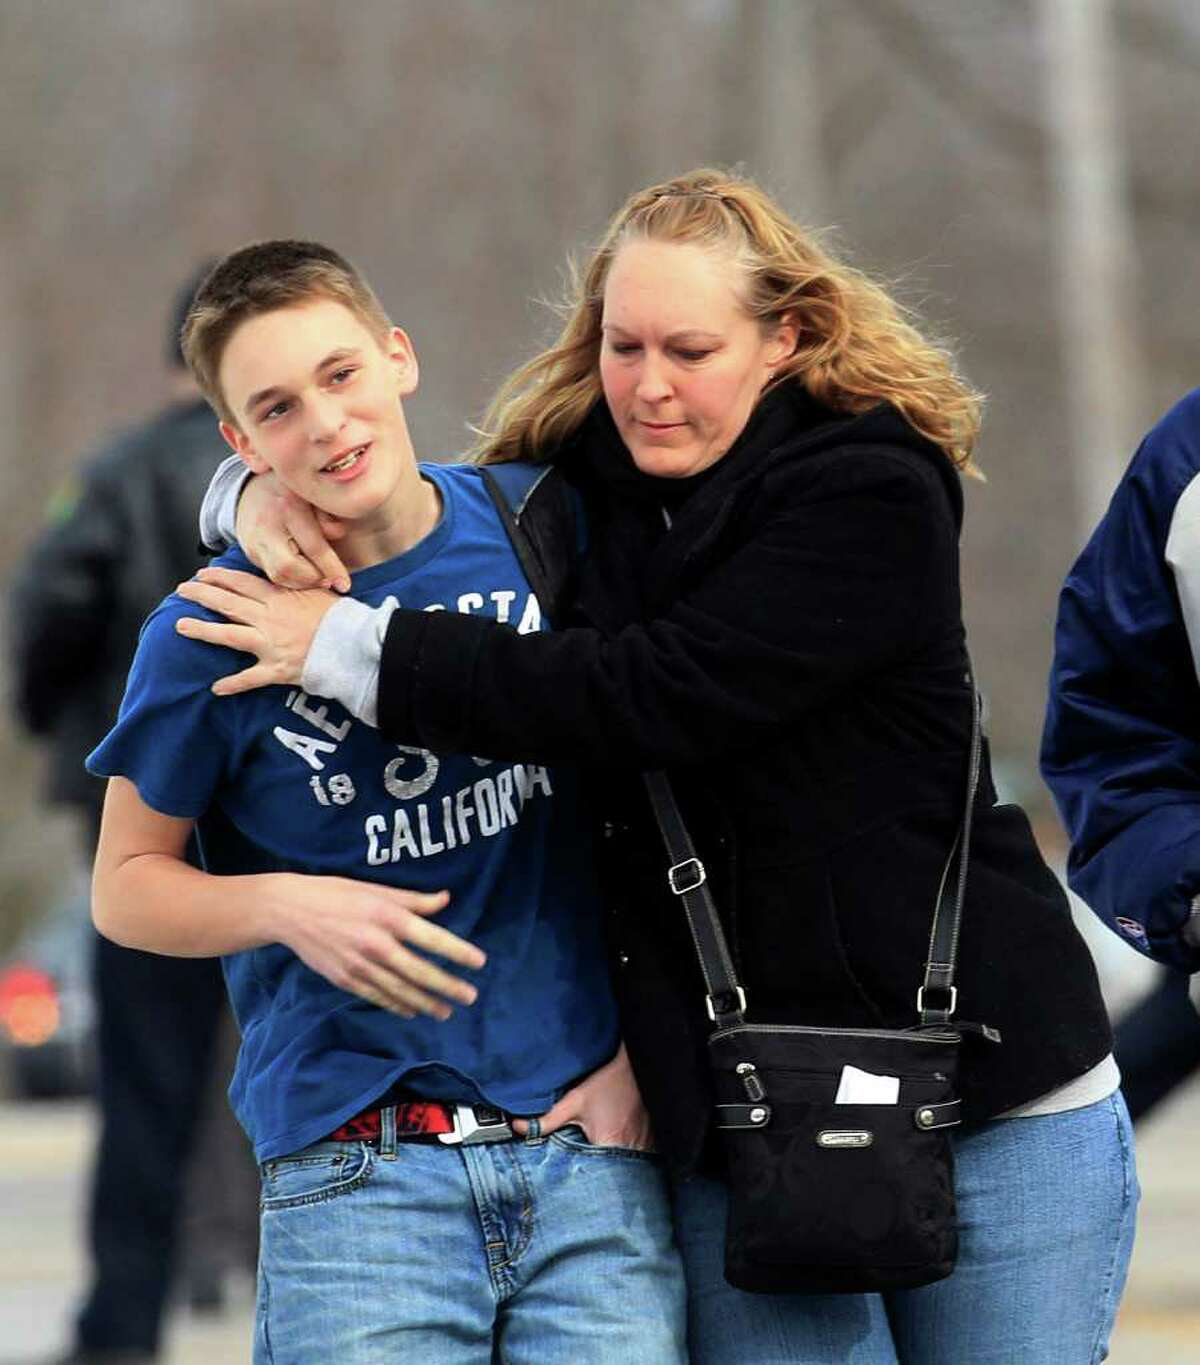 Doug Gasper, a ninth grader at Chardon High School, is hugged by his mother, Sandy, as they leave Maple Elementary School Monday, Feb. 27, 2012, in Chardon, Ohio. Students assembled at Maple Elementary School after a shooting took place at the high school. A gunman opened fire inside the high school's cafeteria at the start of the school day, wounding four students, officials said. A suspect is in custody. (AP Photo/Tony Dejak)